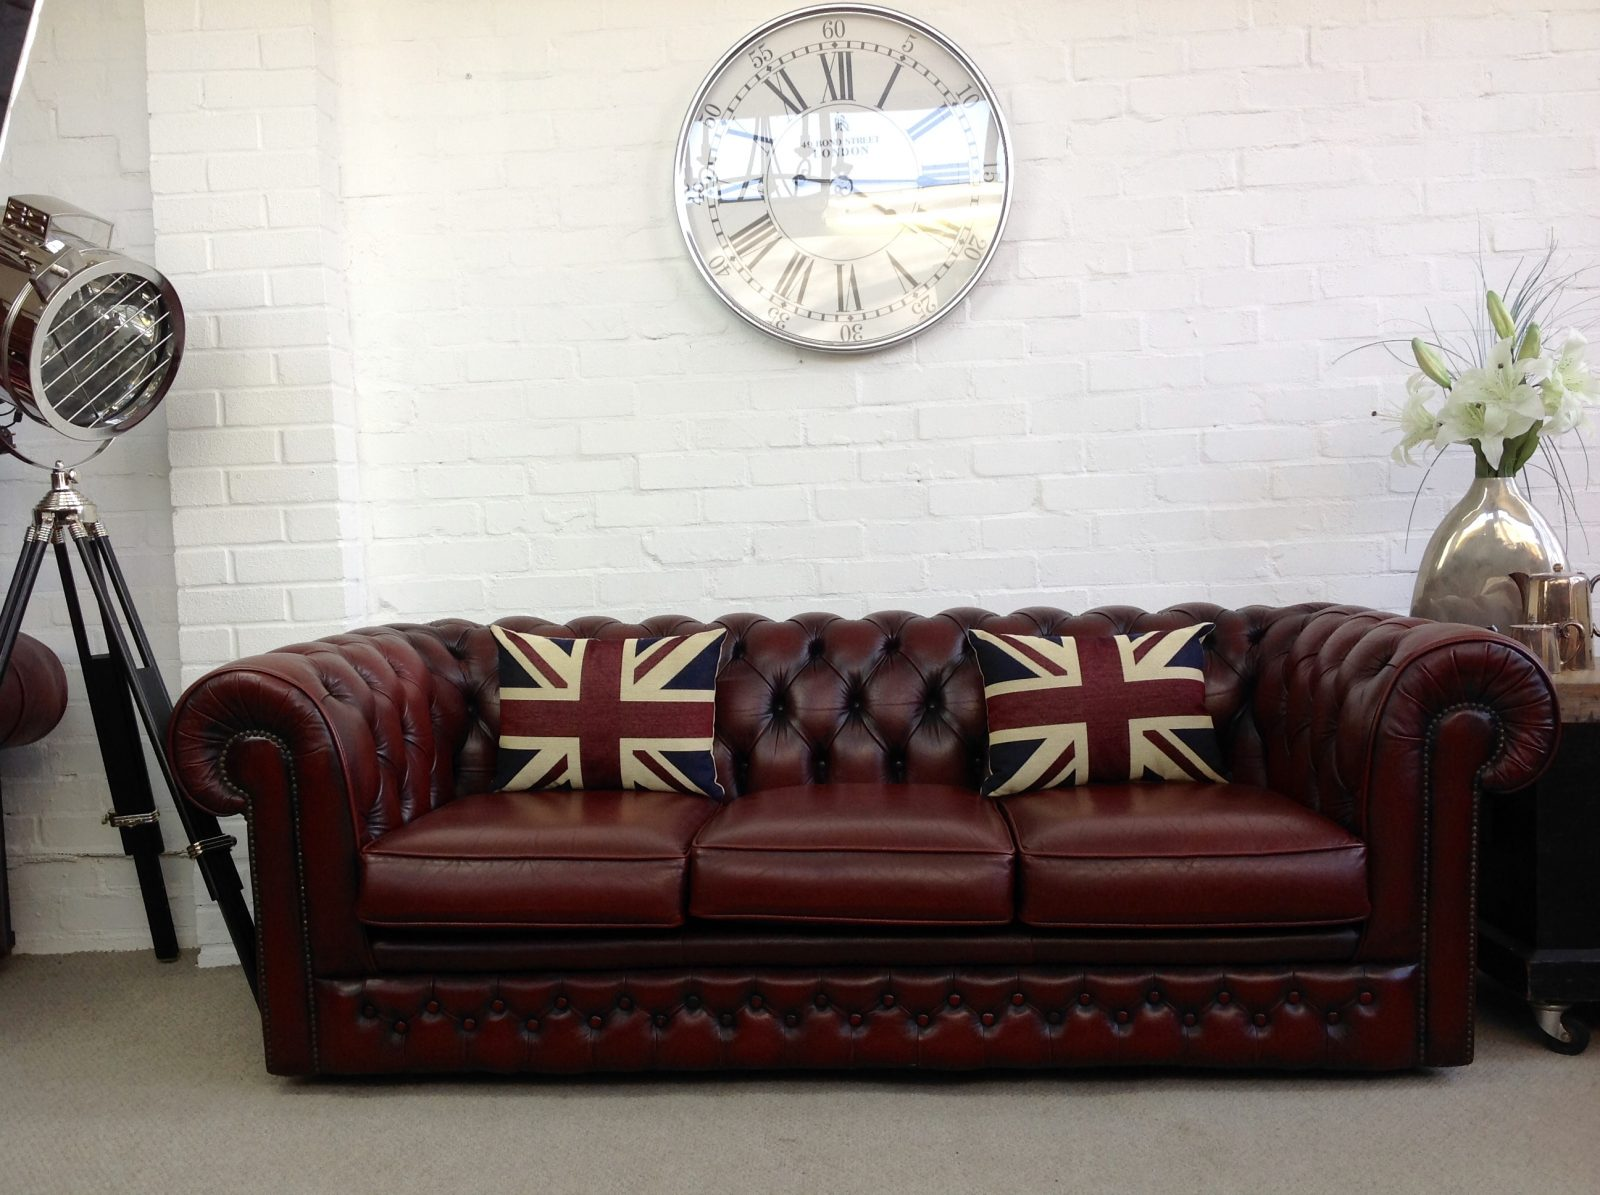 Thomas Lloyd Antique Red Chesterfield Sofa.